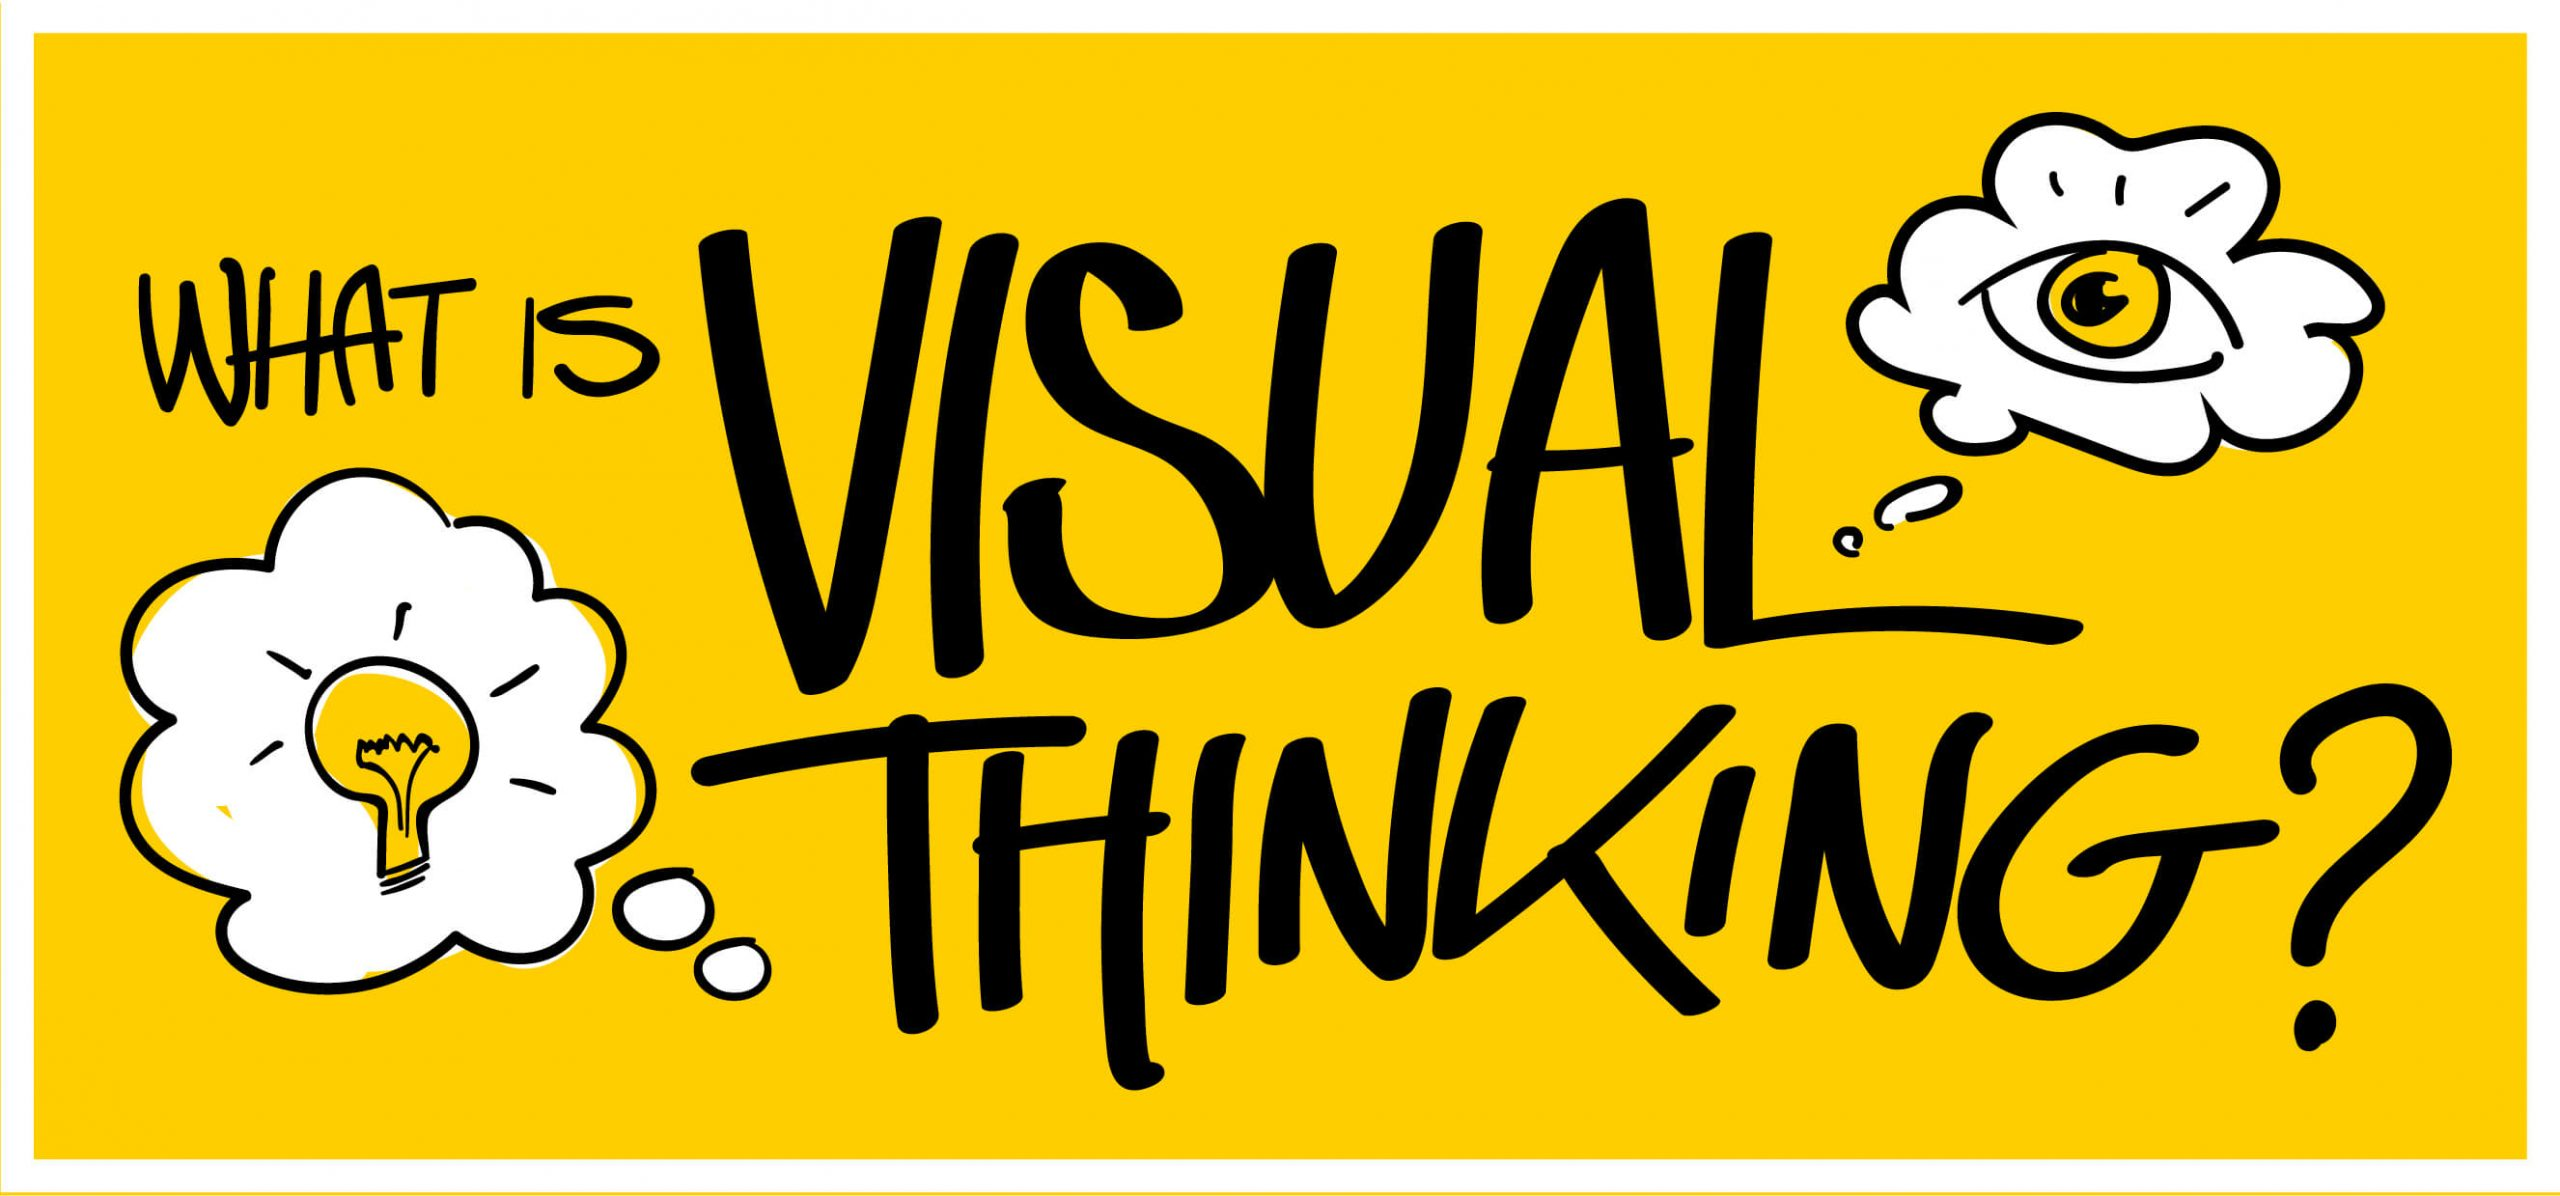 What is visual thinking?